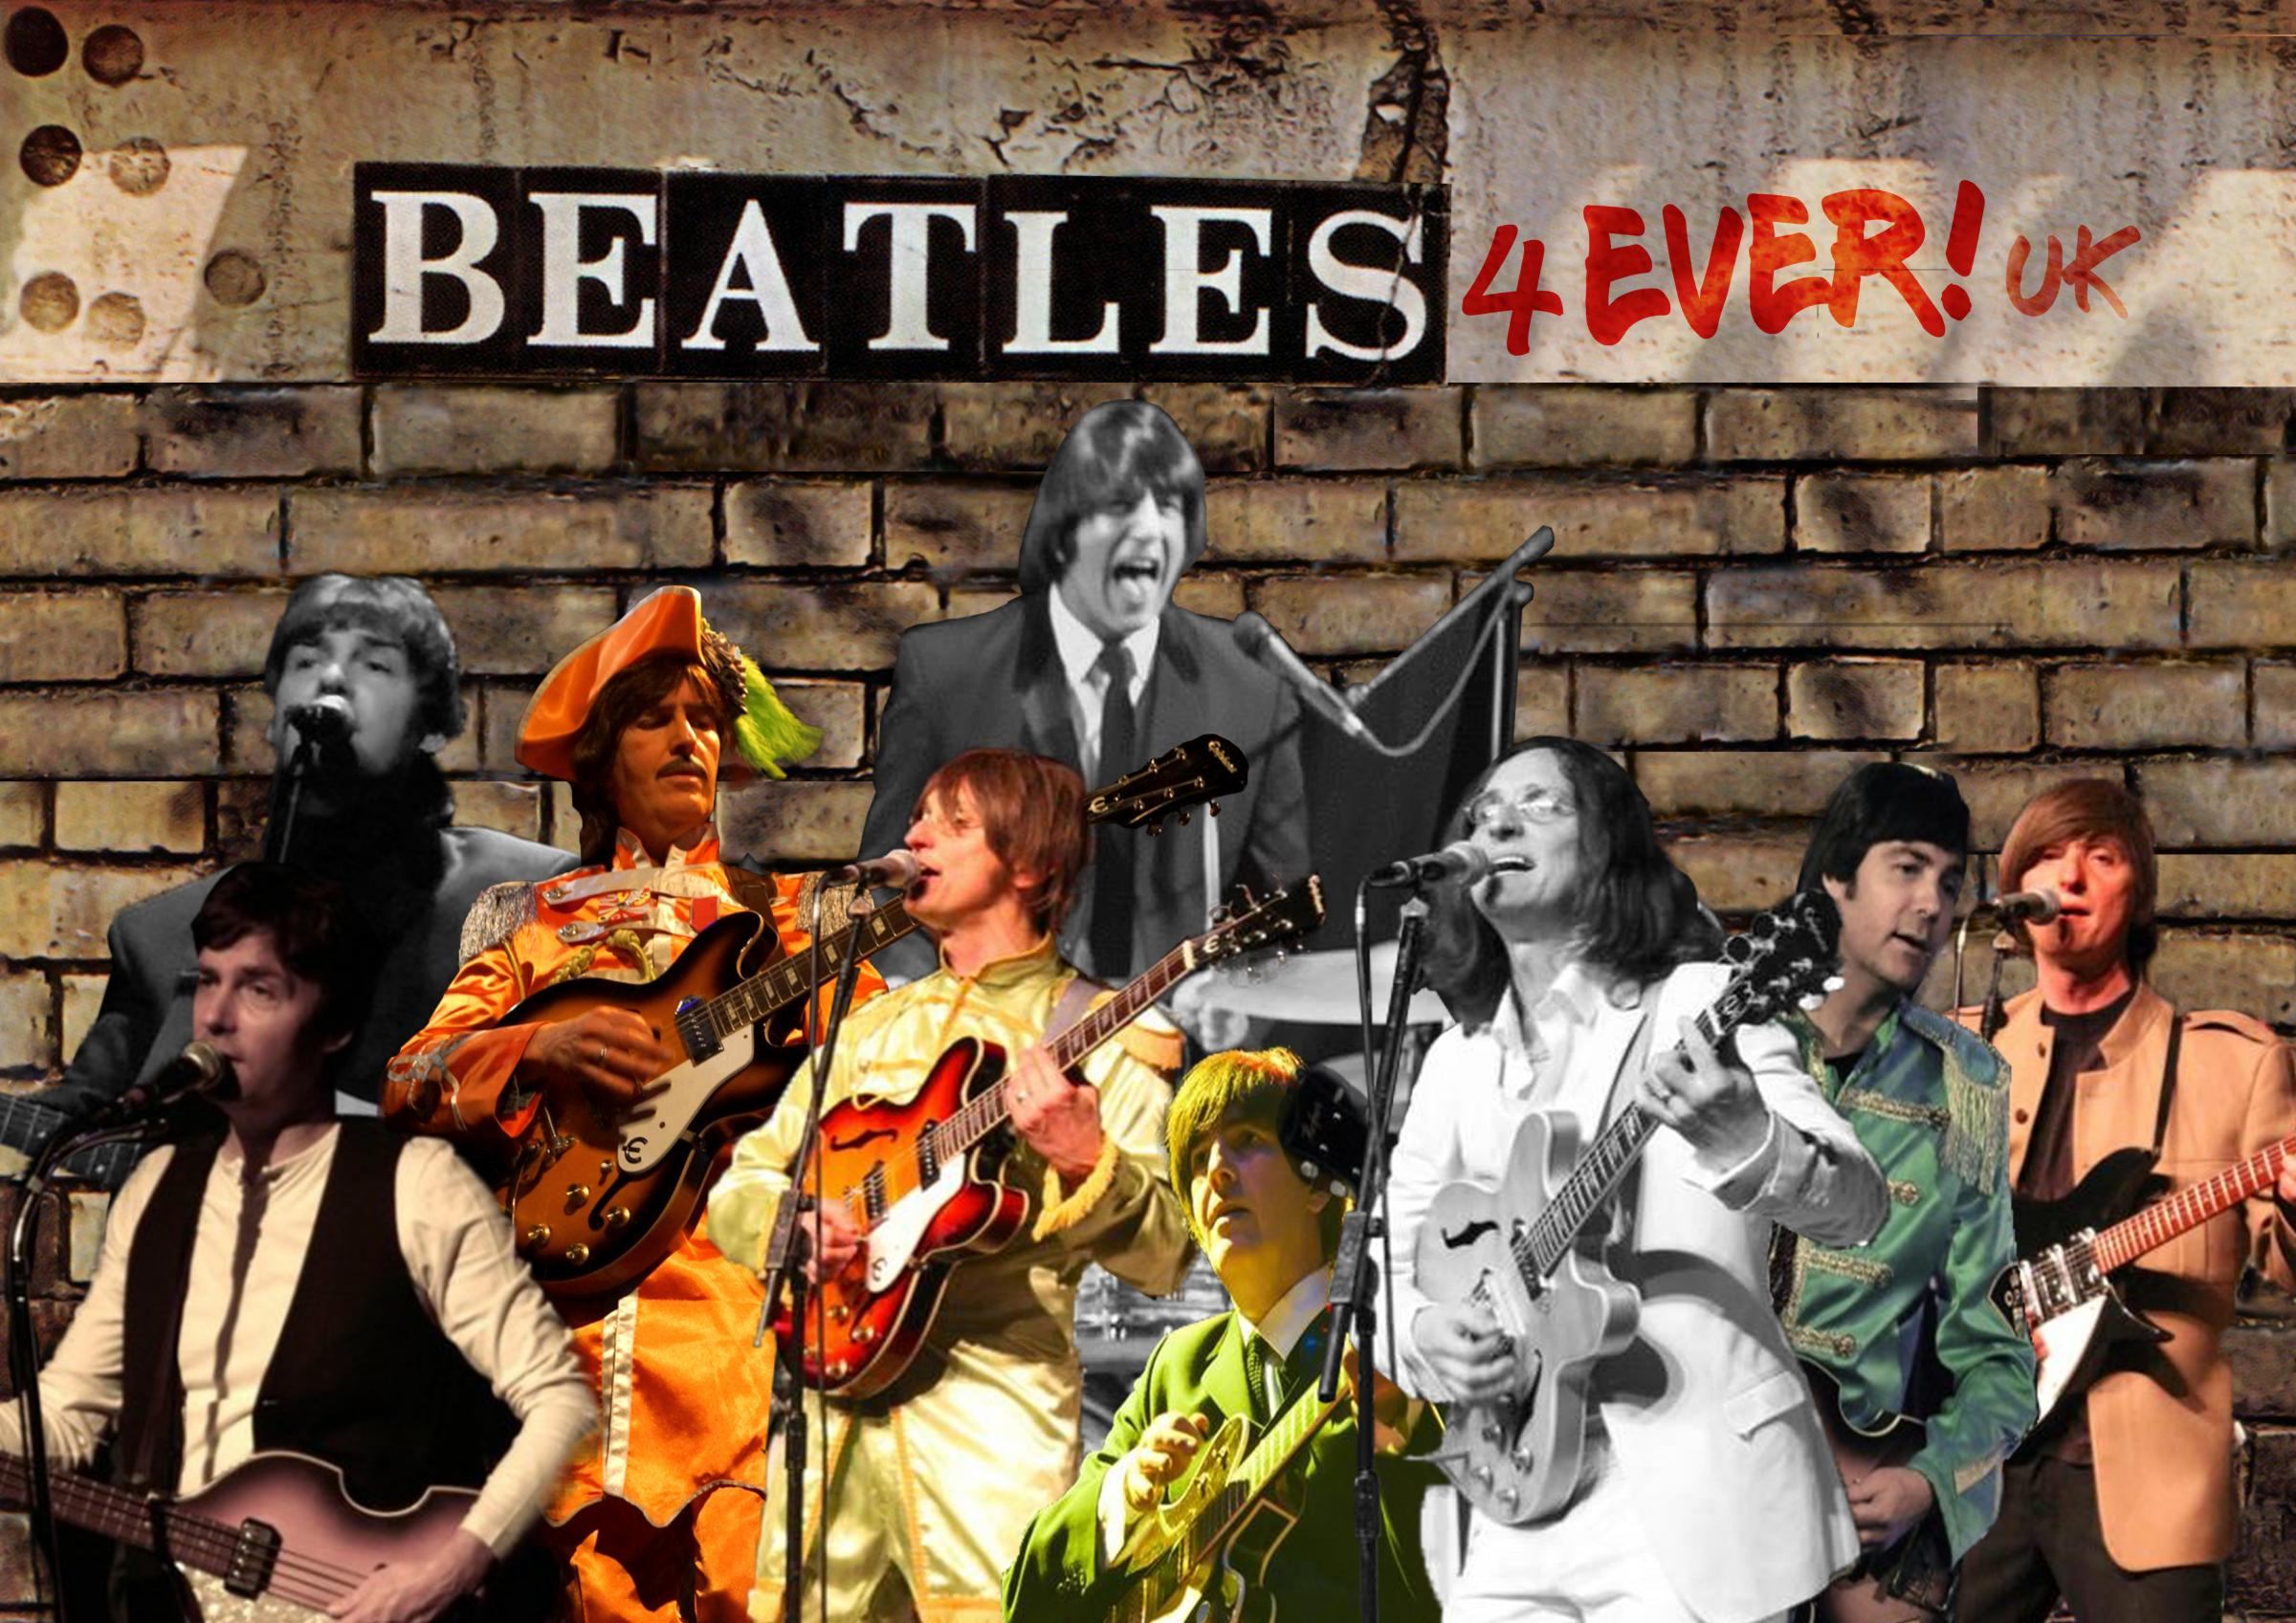 Beatles 4Ever UK Tribute Concert With Budding Local Musicians